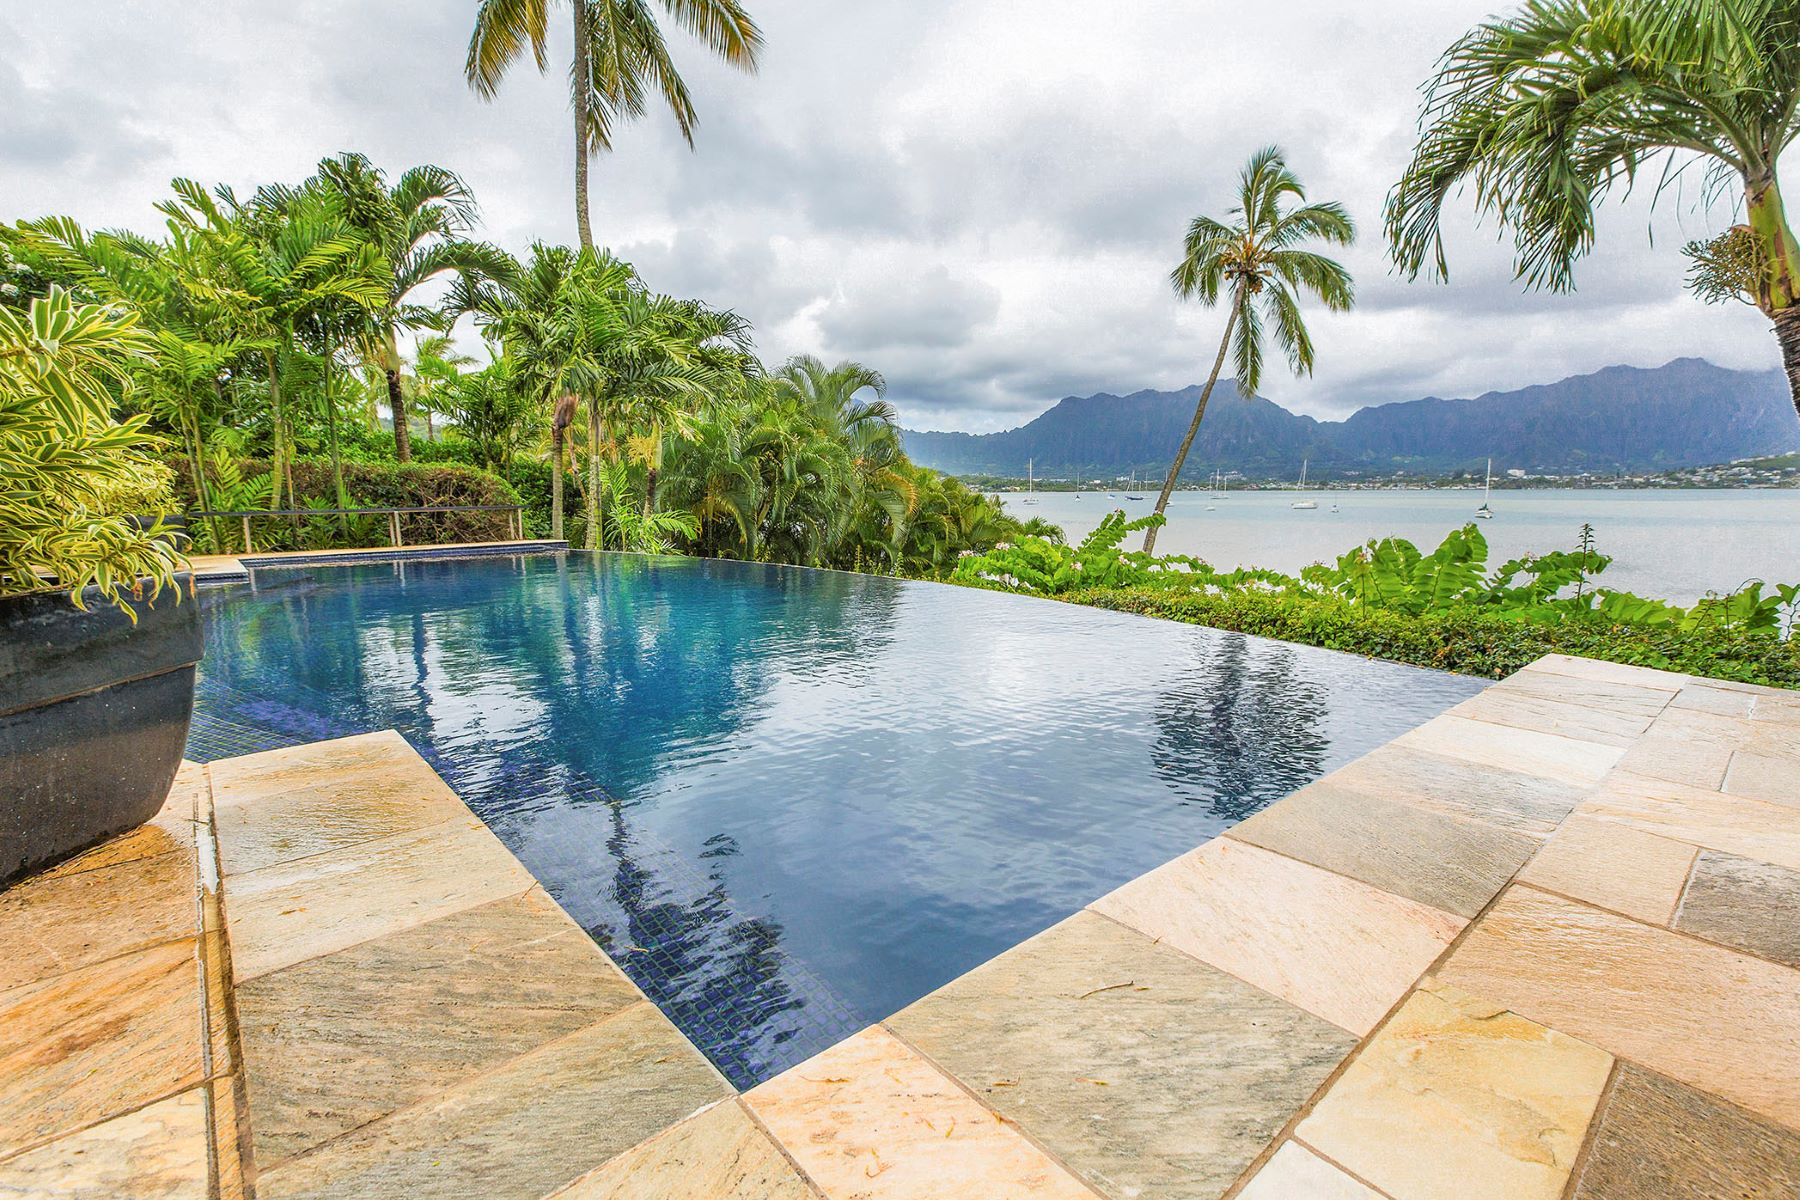 Additional photo for property listing at Luxury Bay Front 44-381 Kaneohe Bay Drive Kaneohe, Hawaii 96744 United States